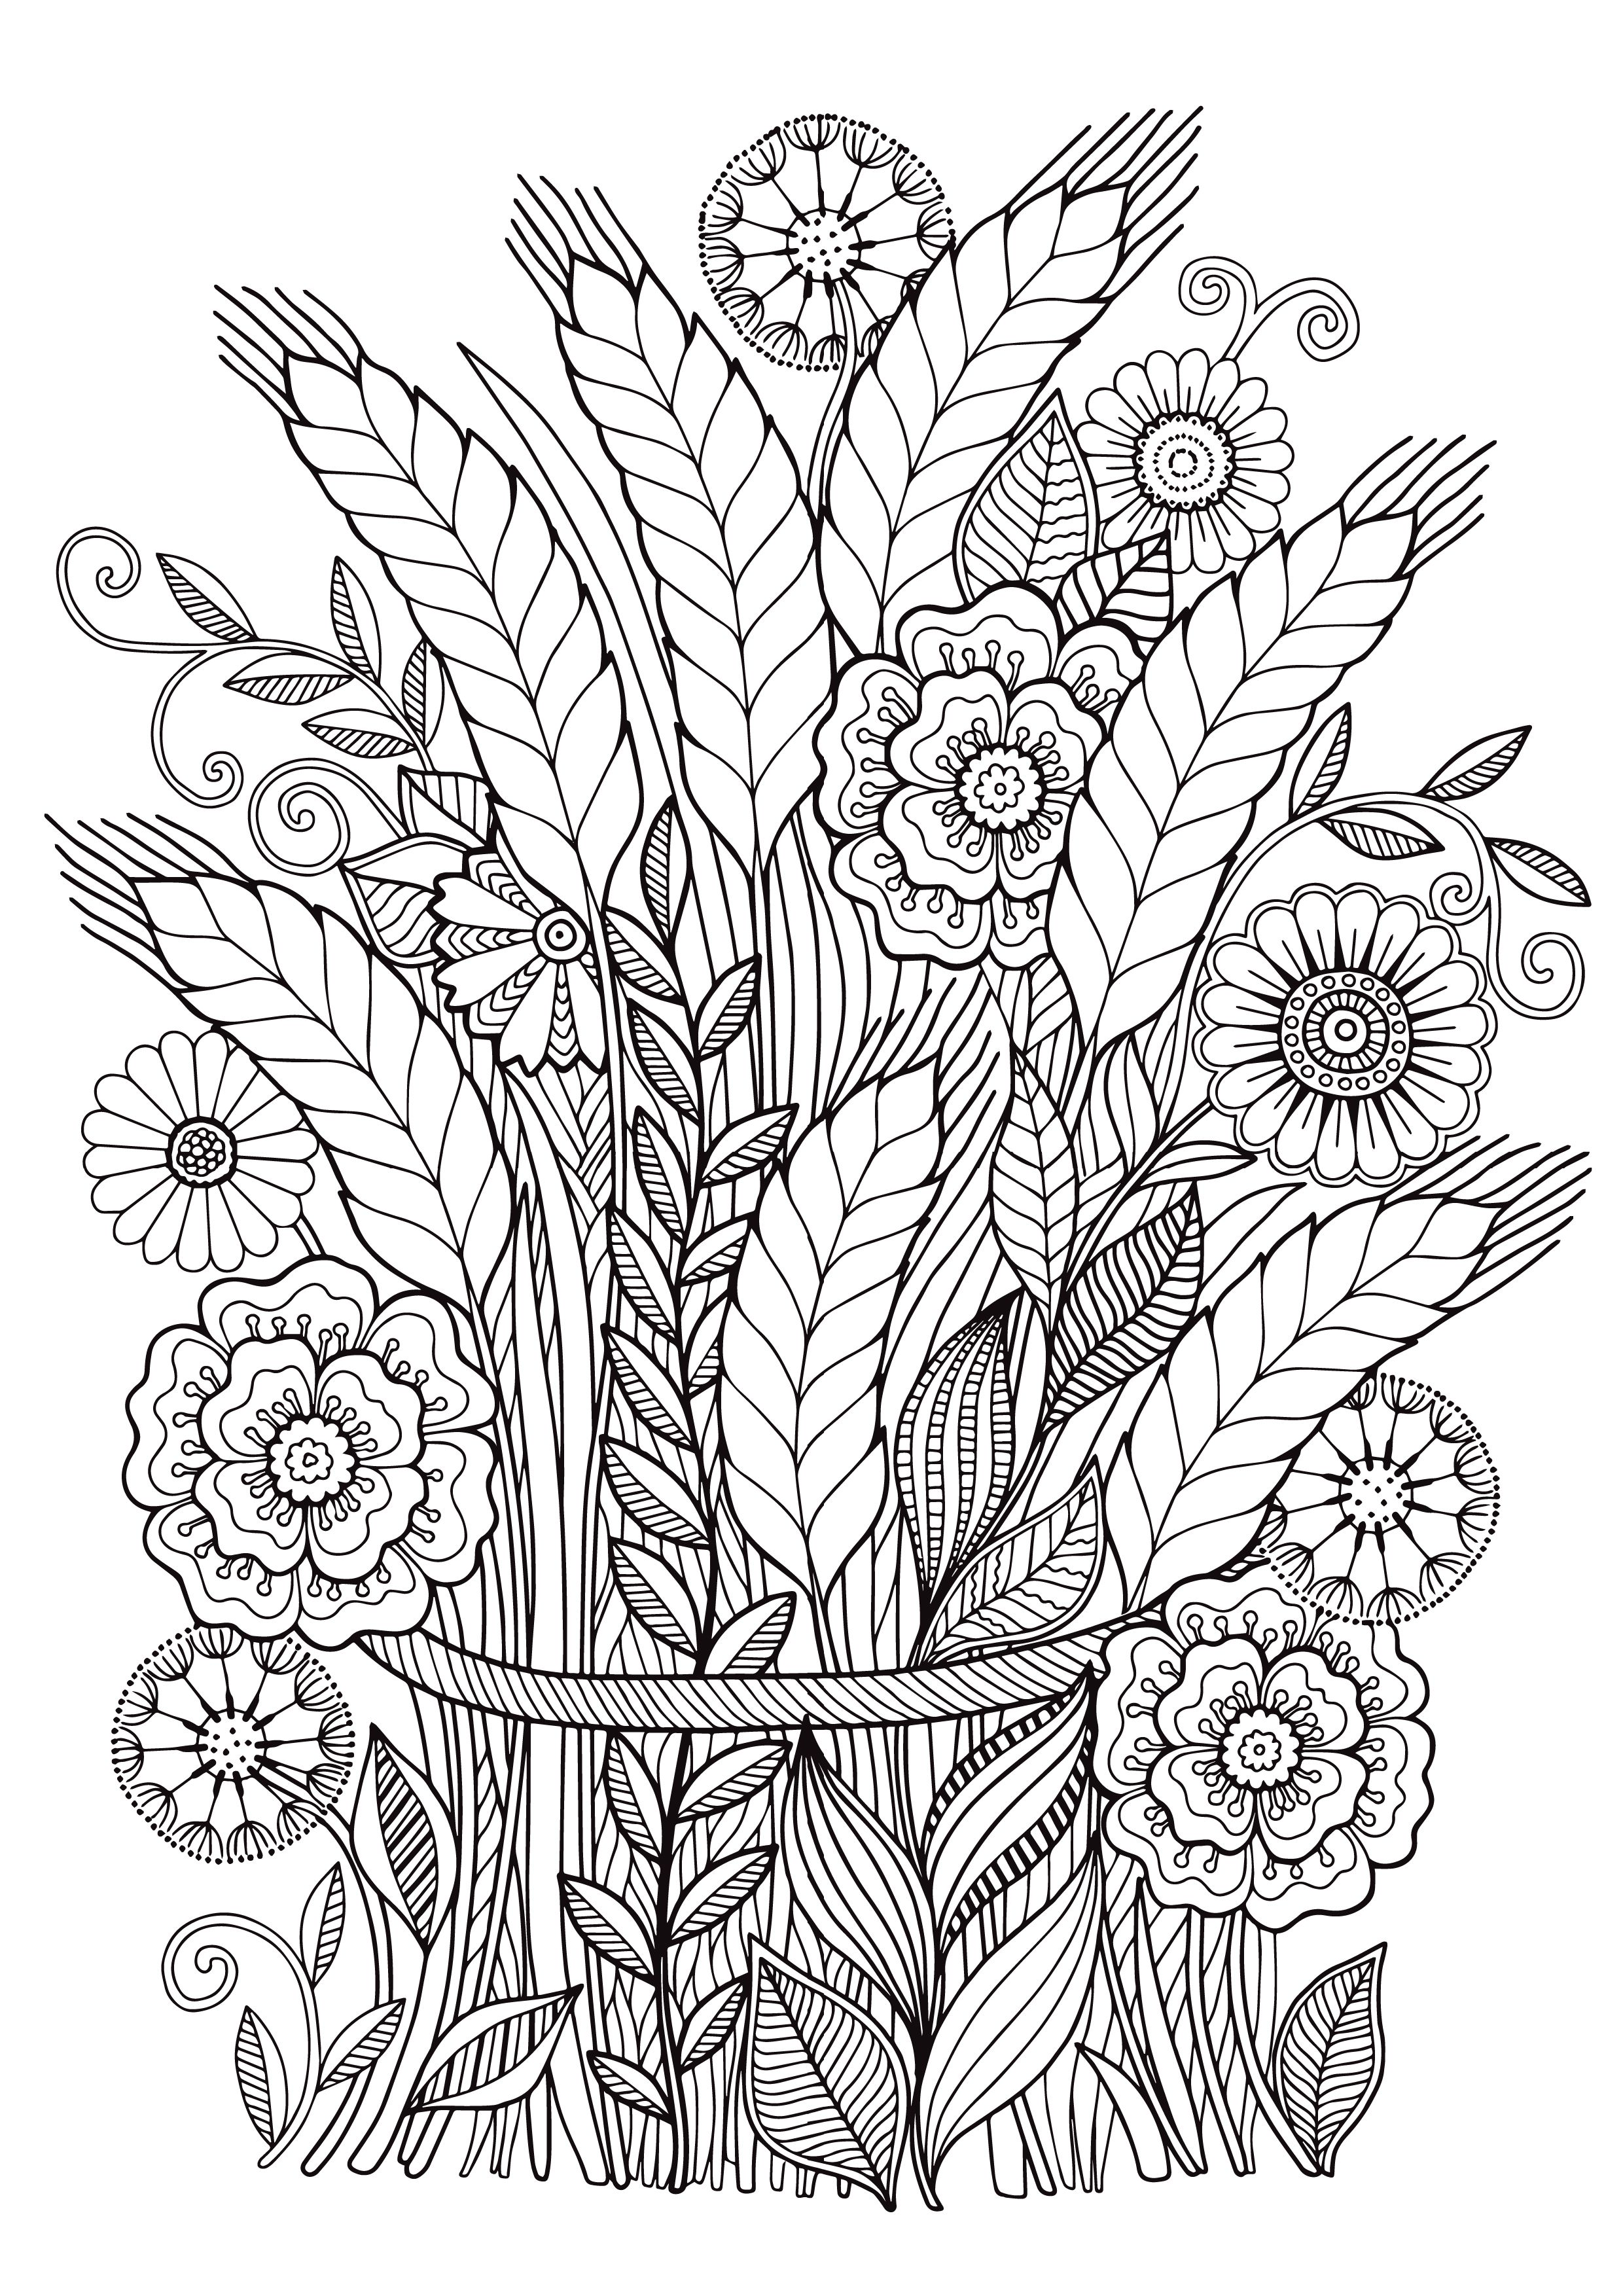 Mindfulness Coloring Summer Coloring Pages Abstract Coloring Pages Coloring Pages